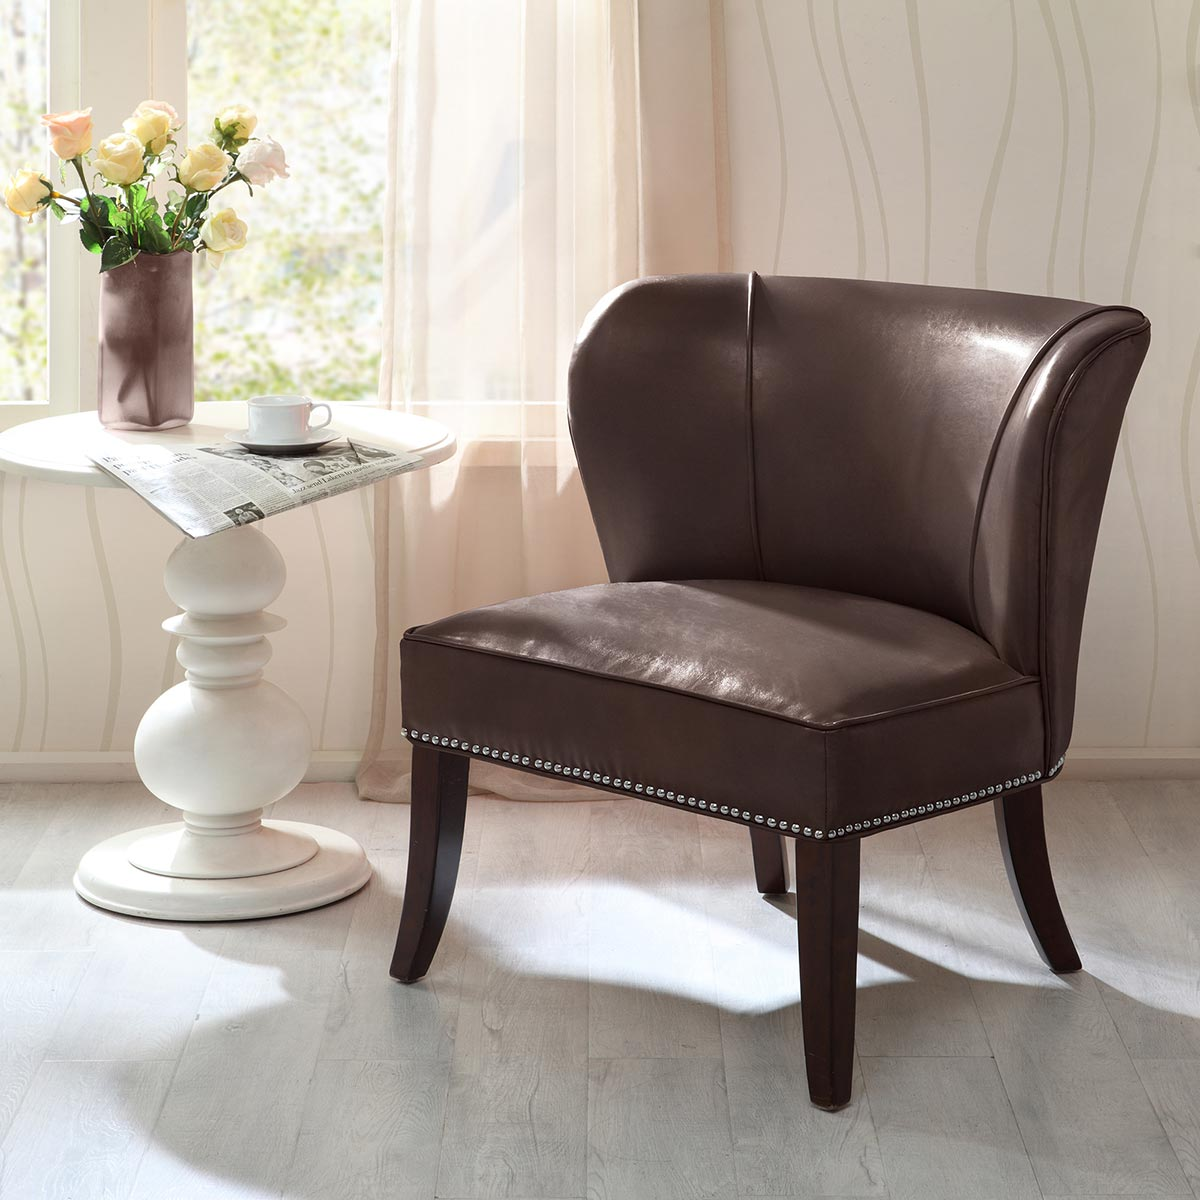 Dallas Faux Leather Accent Chair - Chocolate